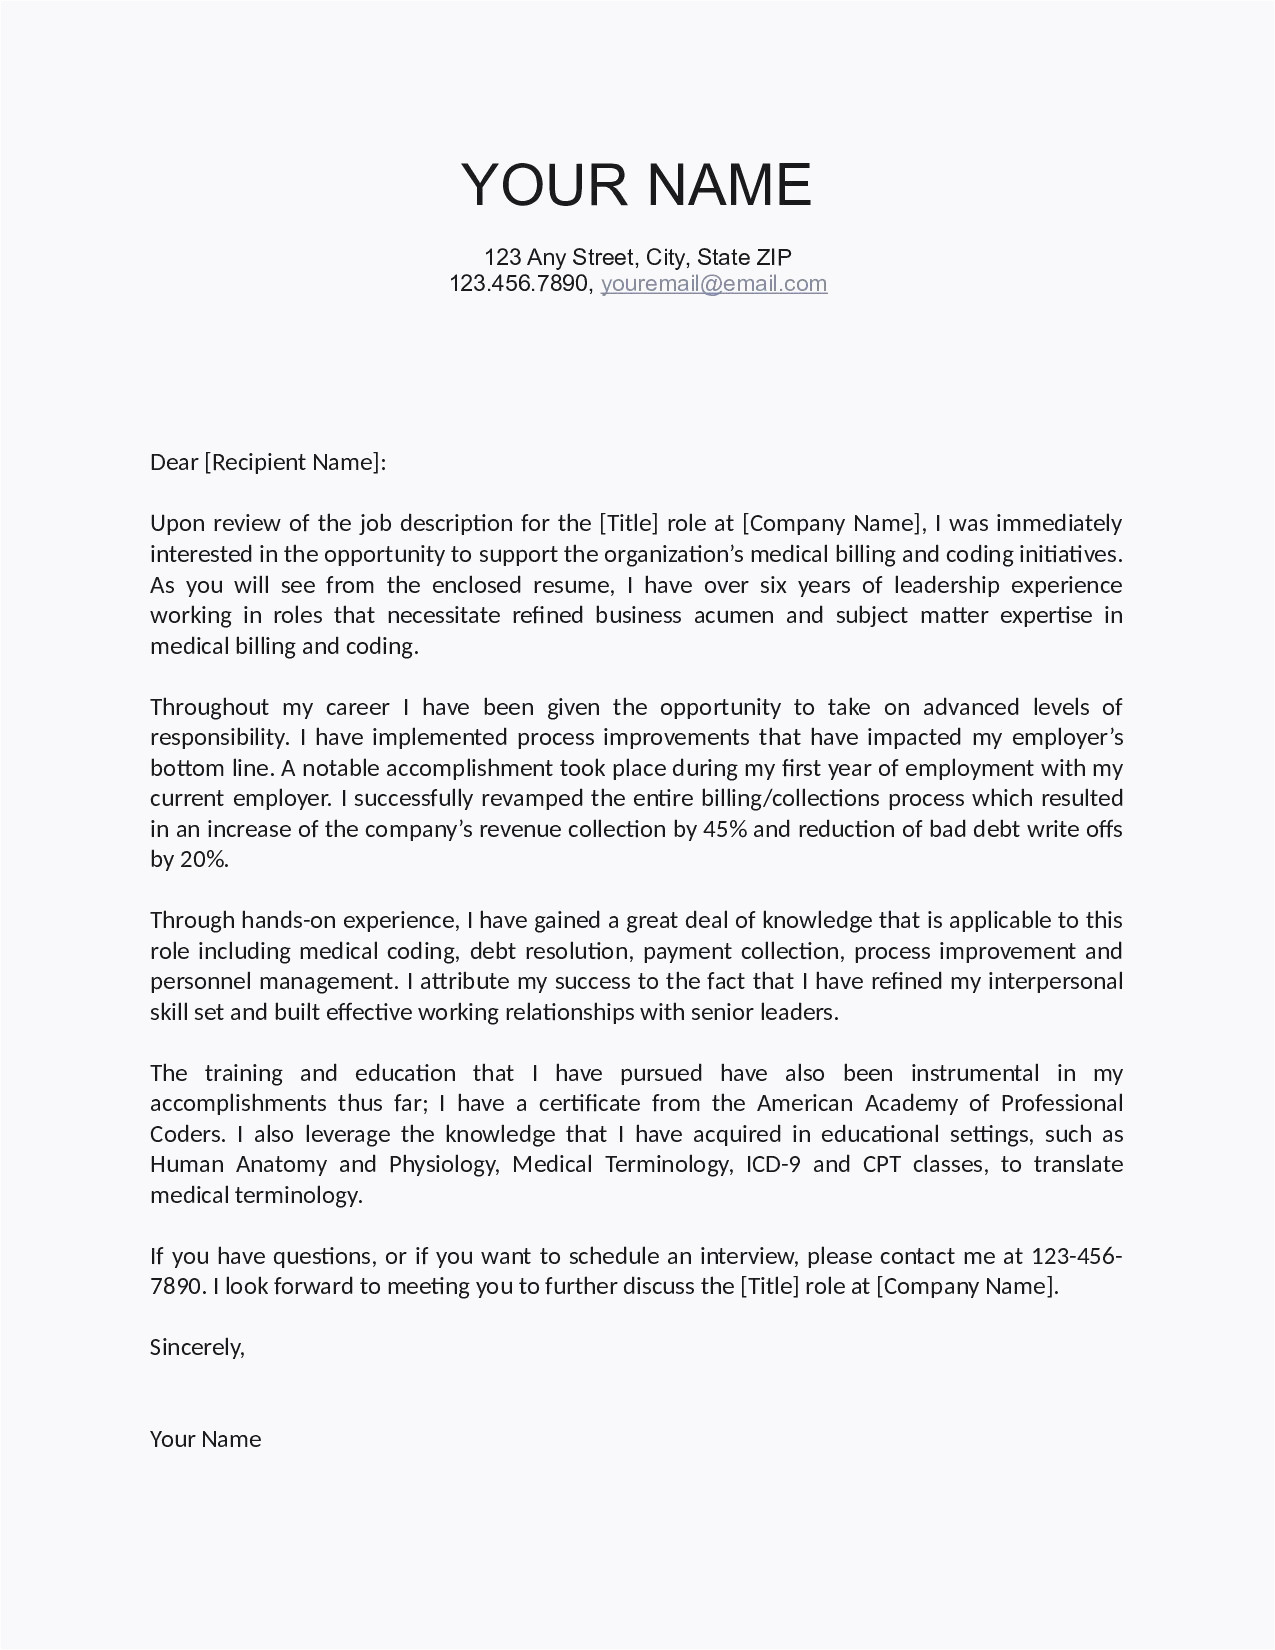 Cover Letter Template 2017 - 40 Beautiful Examples Cover Letters 2017 Graphics